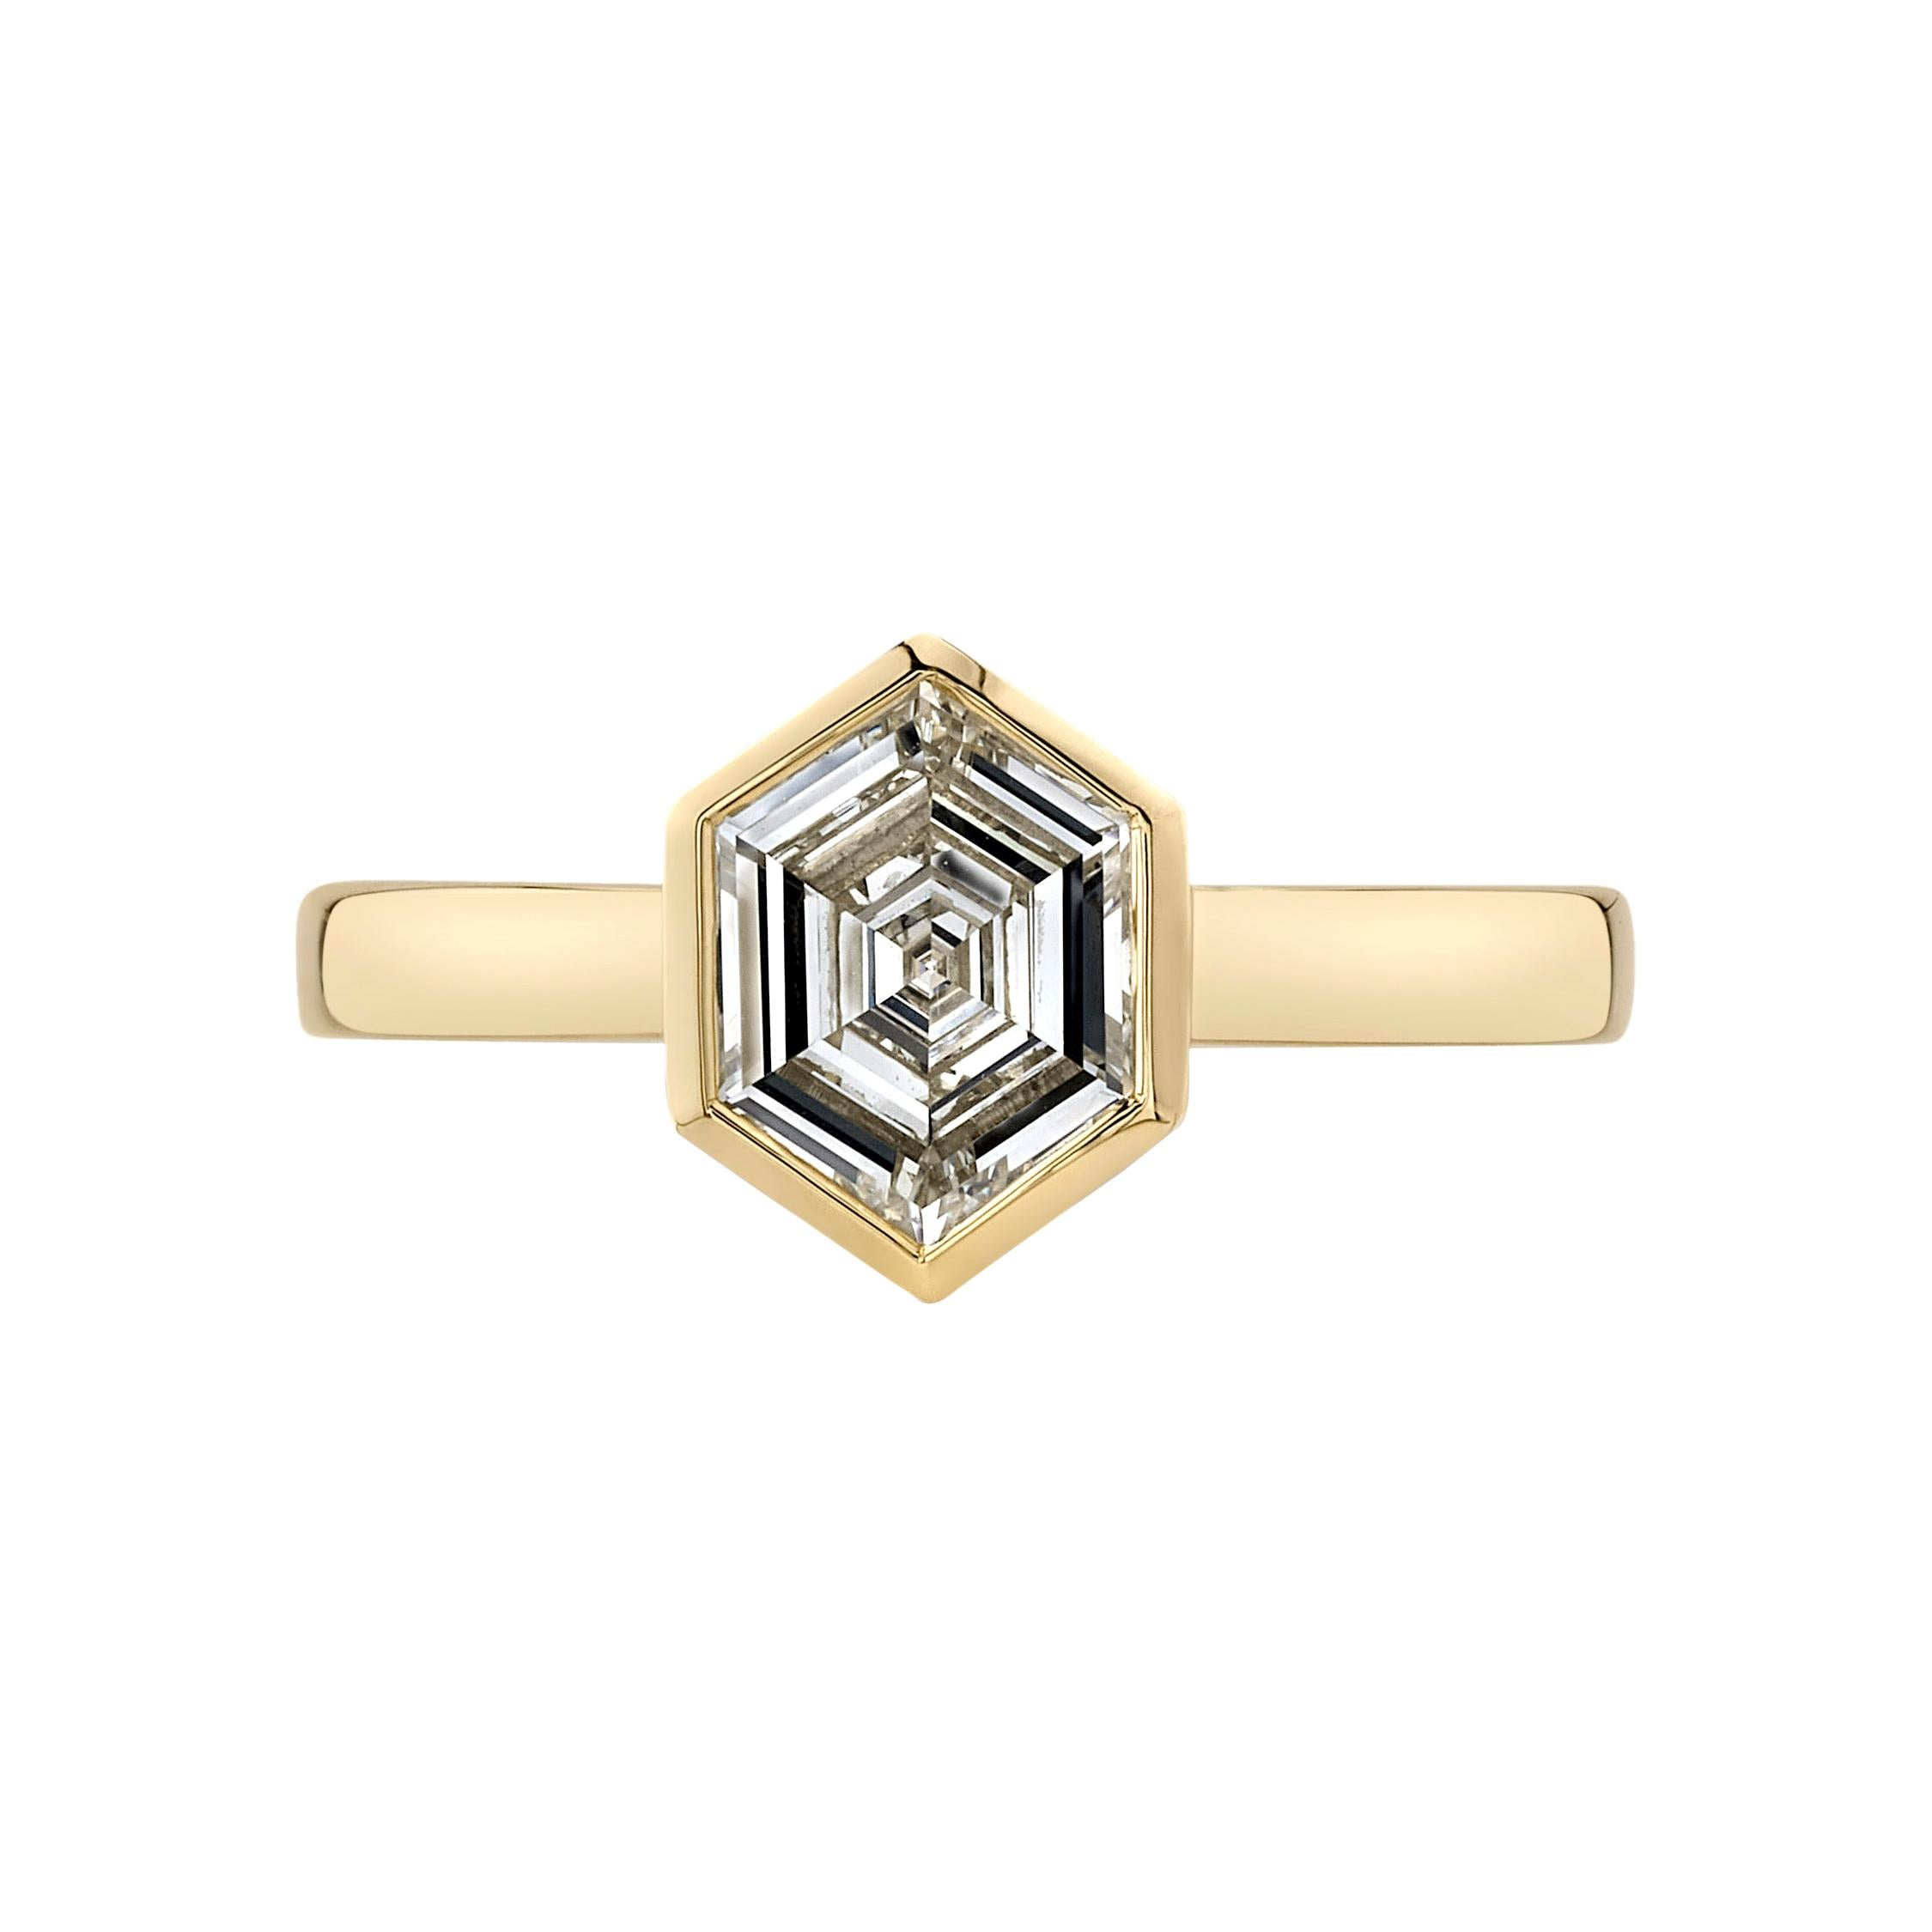 1.08 Carat Hexagonal Step Cut Diamond Set in a Yellow Gold Engagement Ring